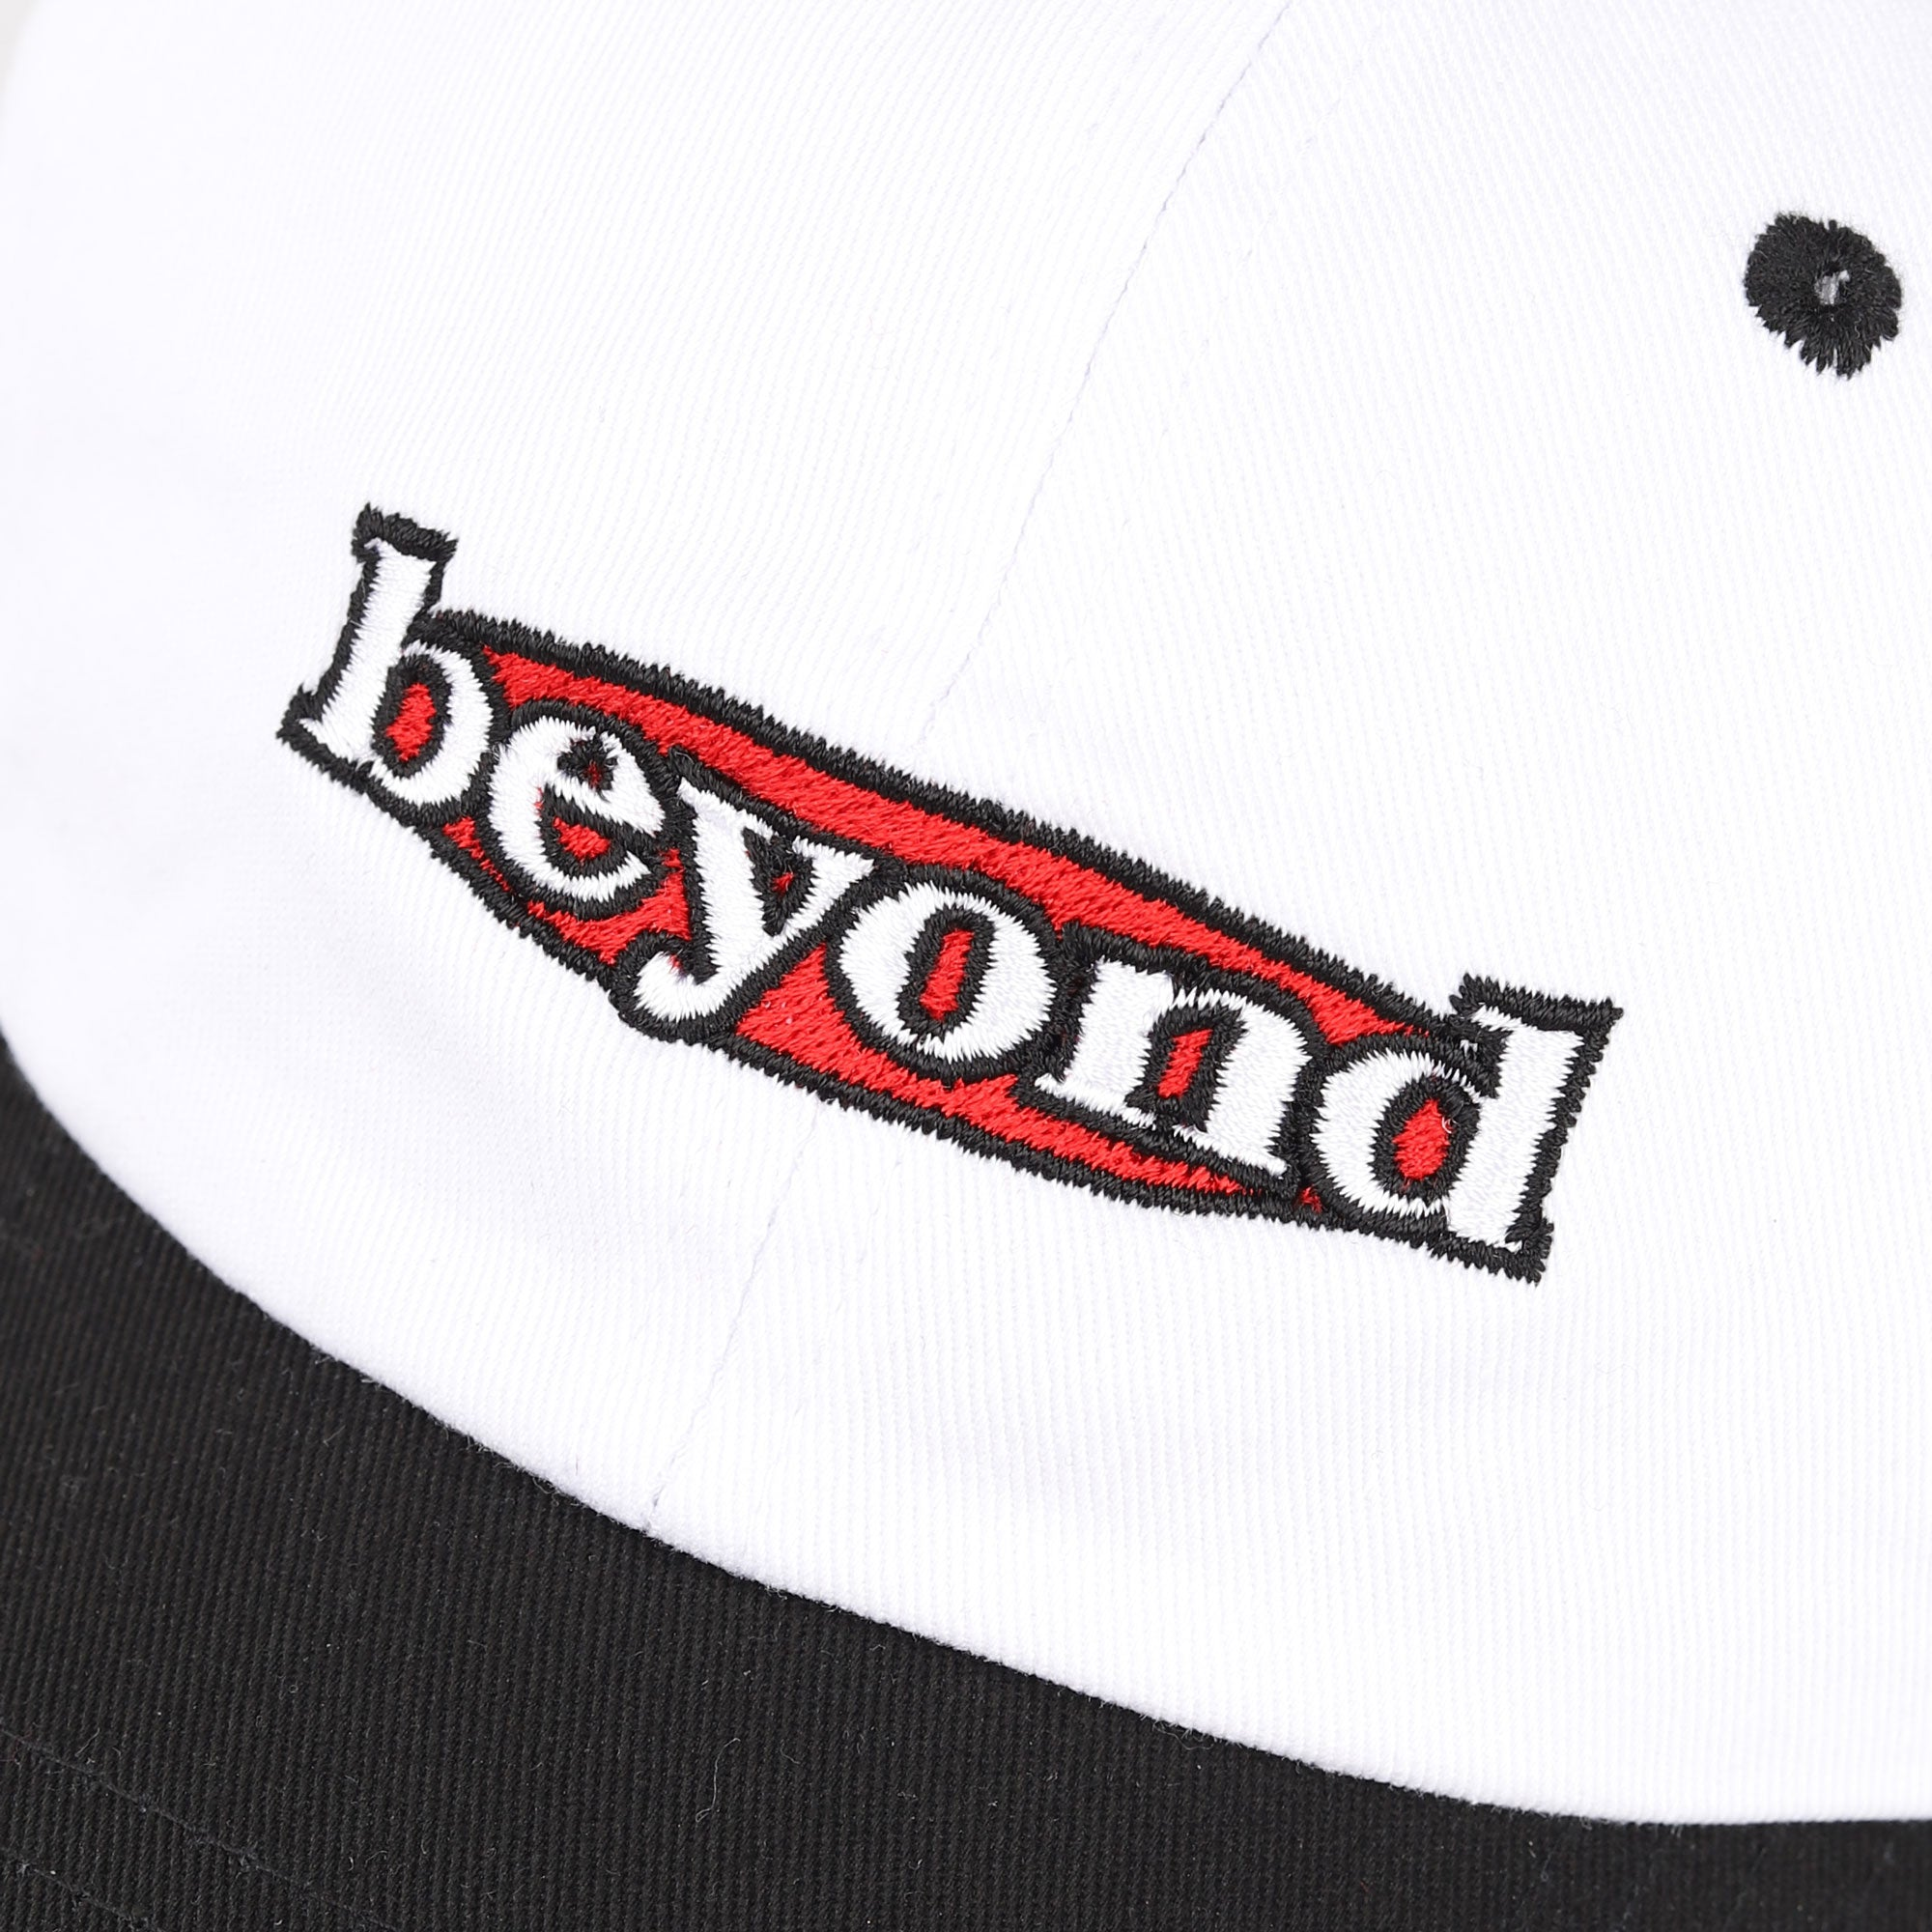 Beyond Standard 2 Cap Product Photo #2